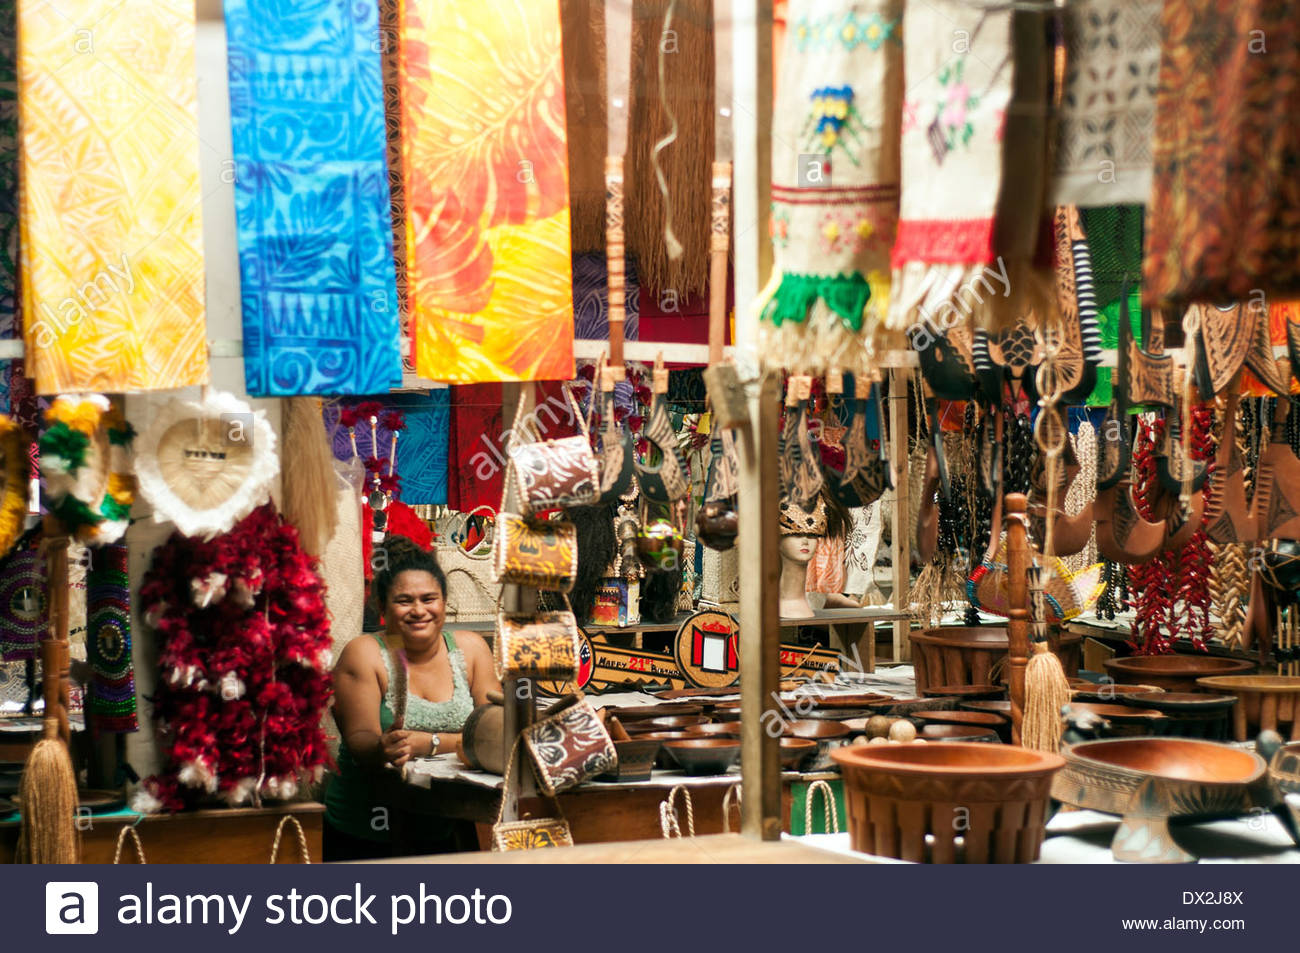 Flea Market Apia, craft stalls, Flea Market, town Center, Apia, Samoa Stock Photo ...